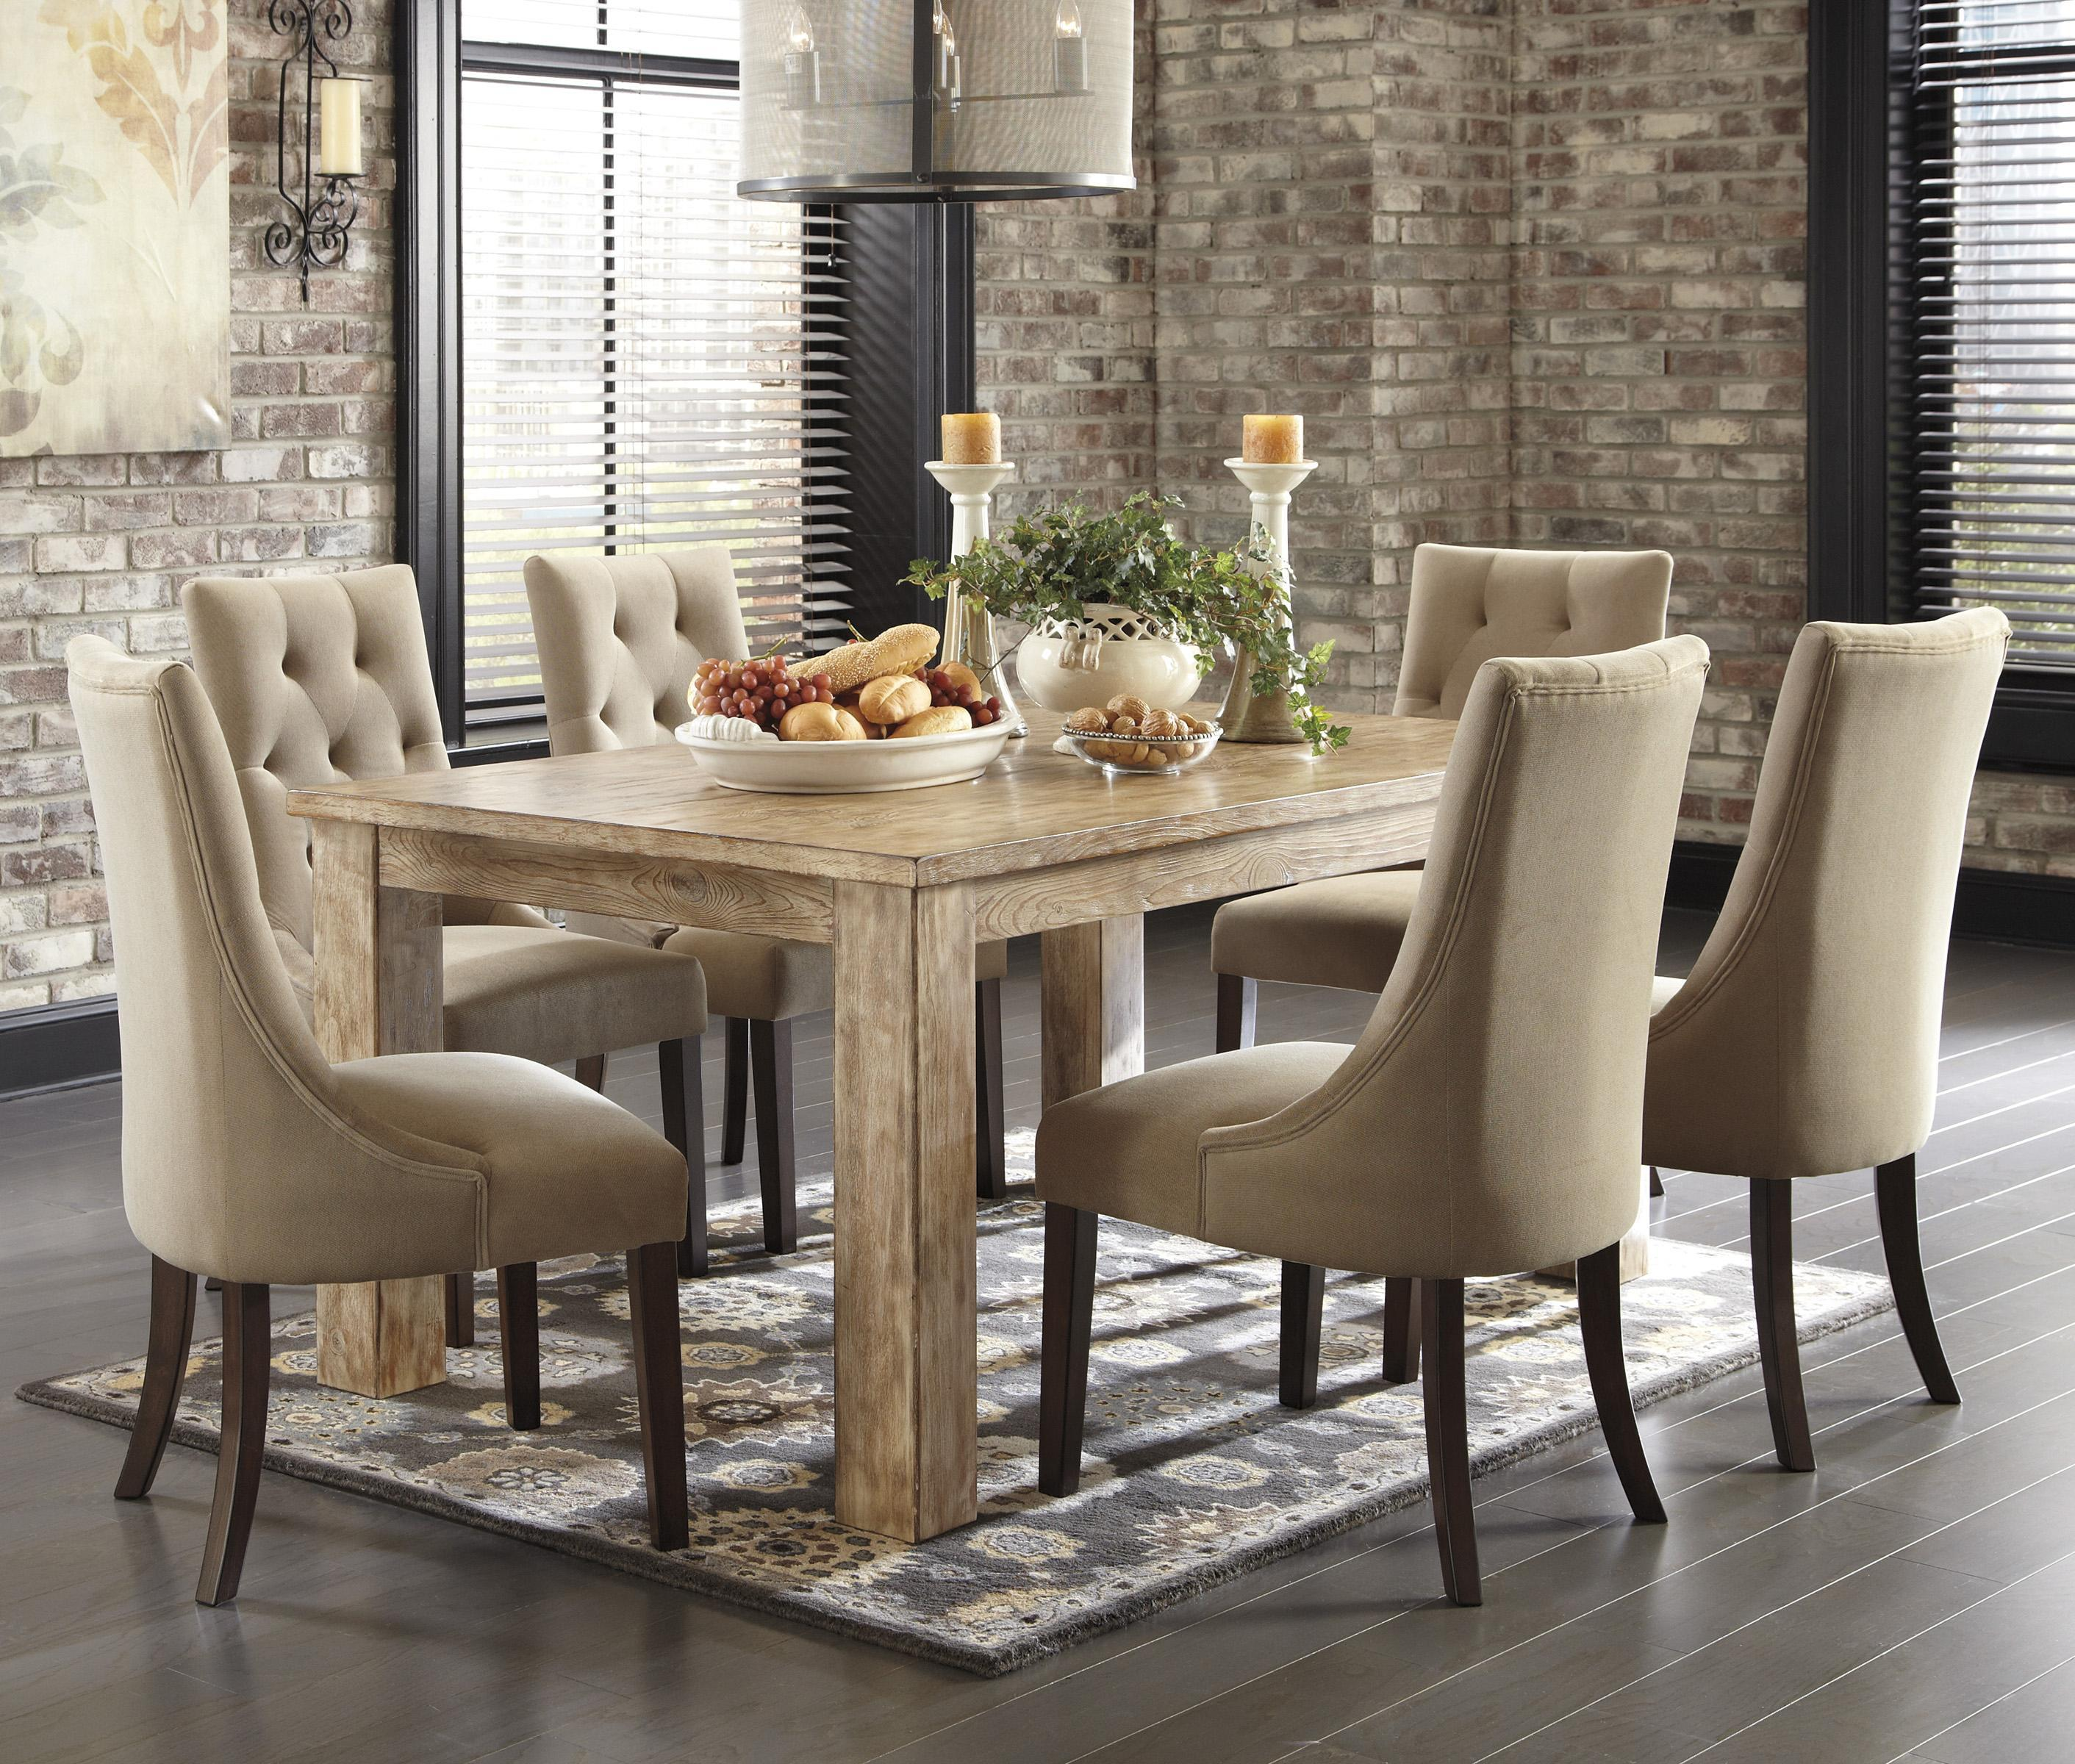 Dining Room Tables On Ashley Furniture Pine Dining Room Chairs